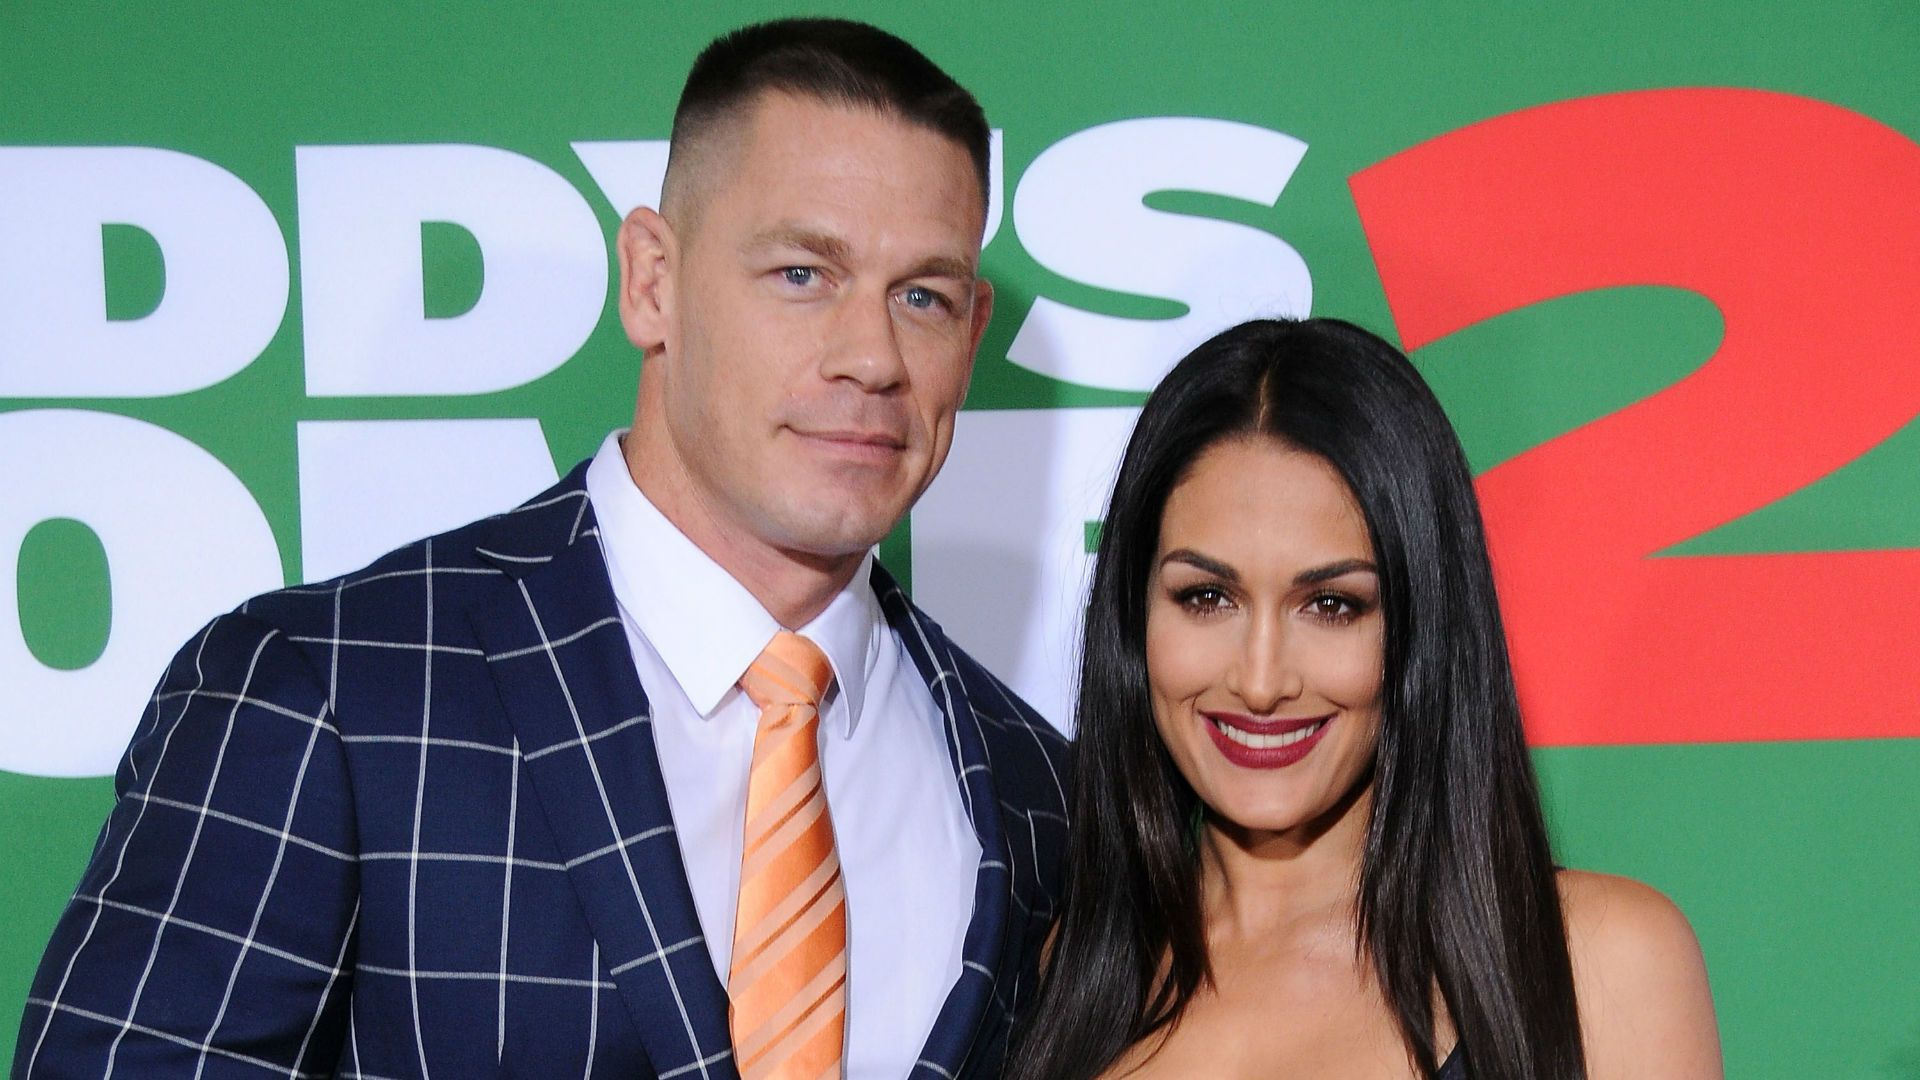 John Cena and Nikki Bella were Racing each other to Get Married